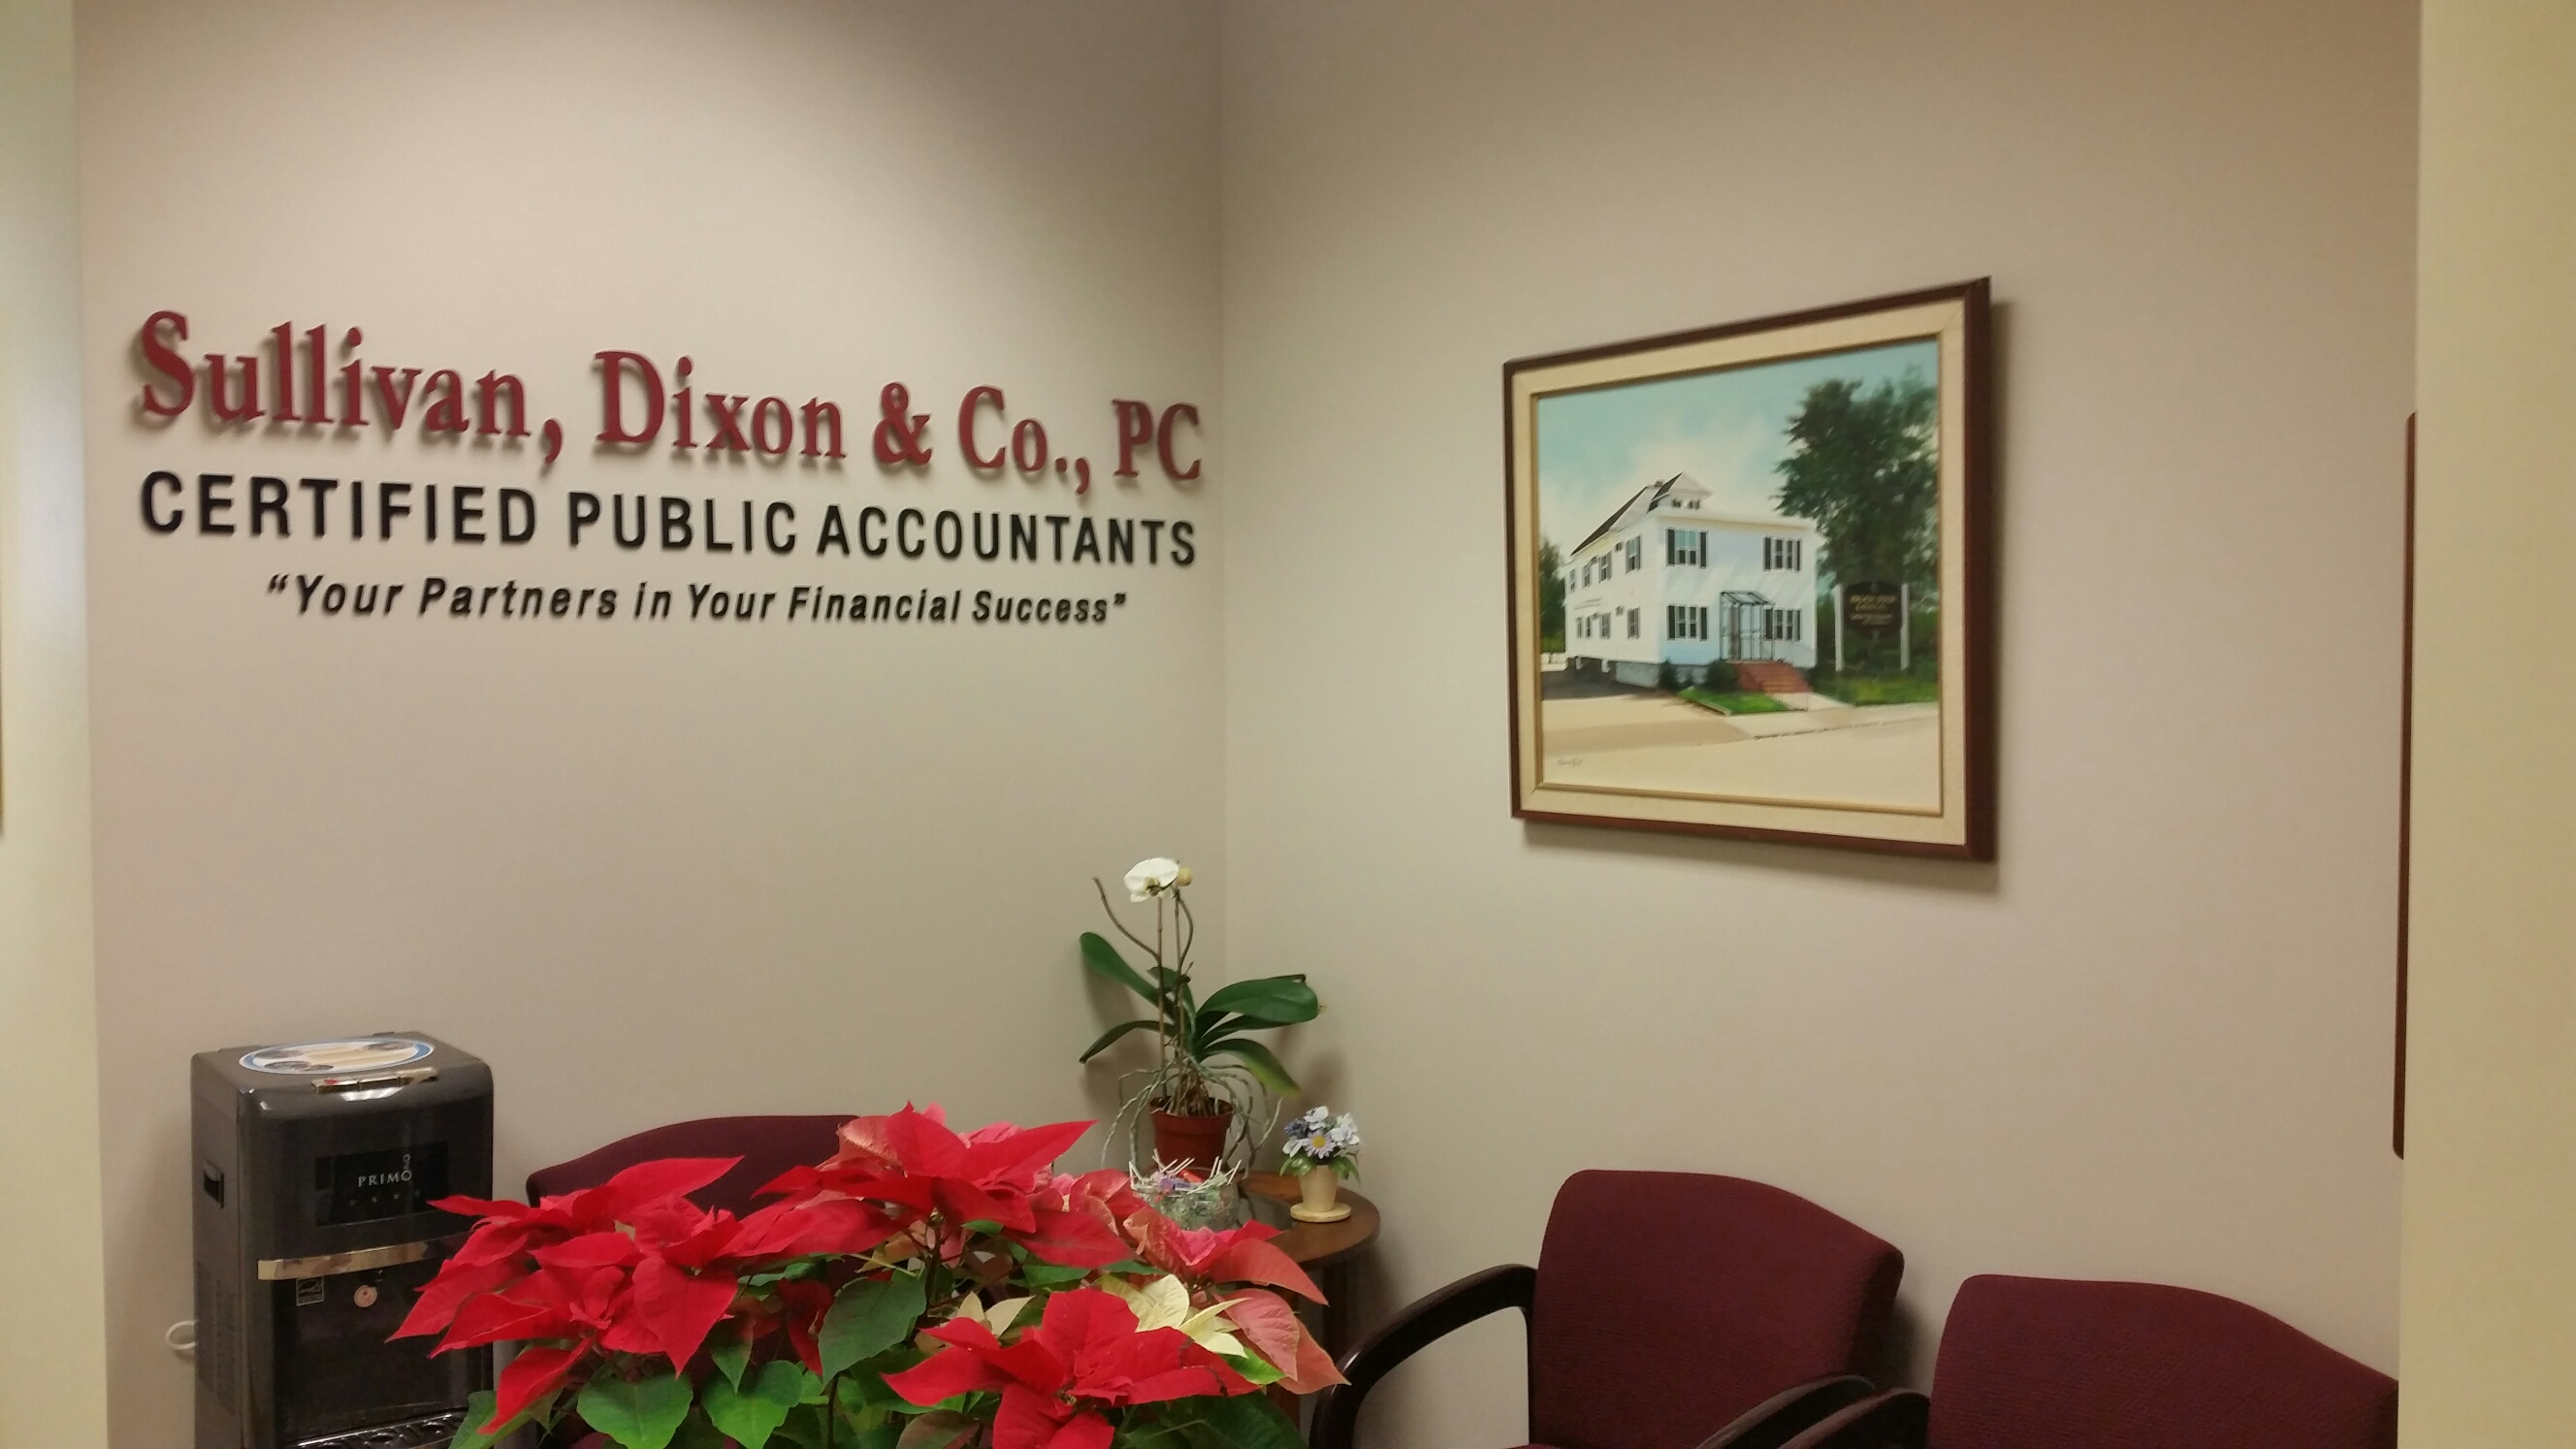 Sullivan, Dixon & Co., P.C.<br />Certified Public Accountants